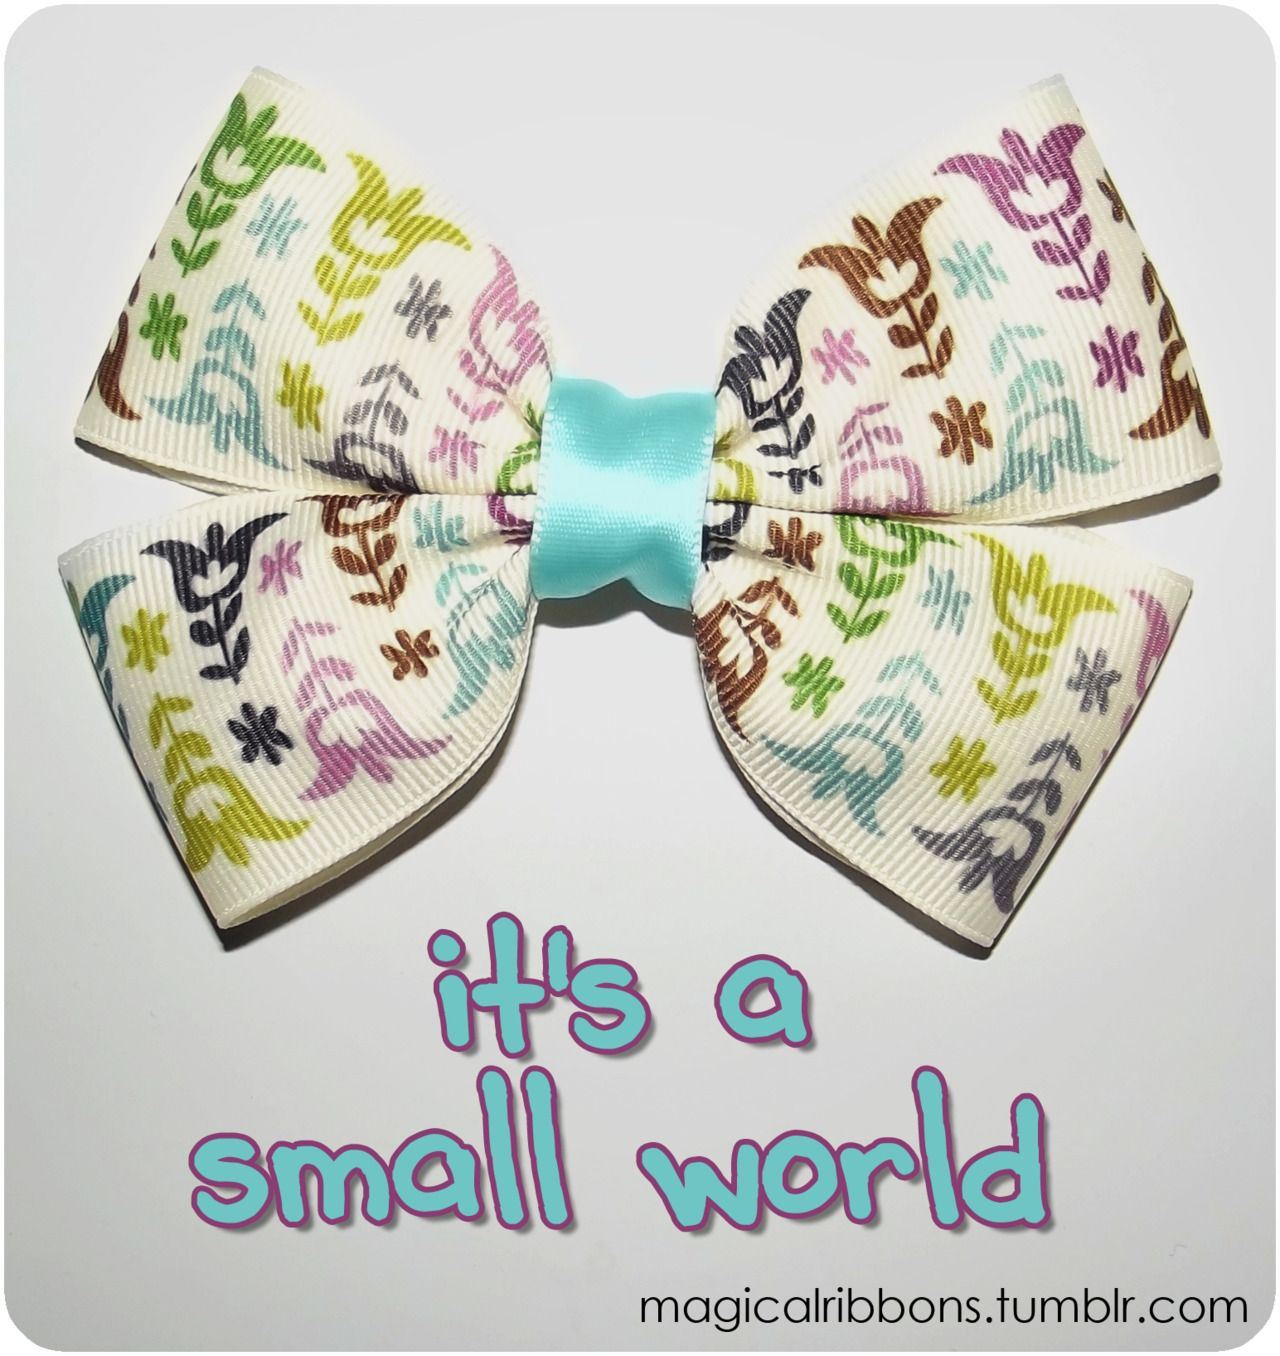 Magical Ribbons - it's a small world